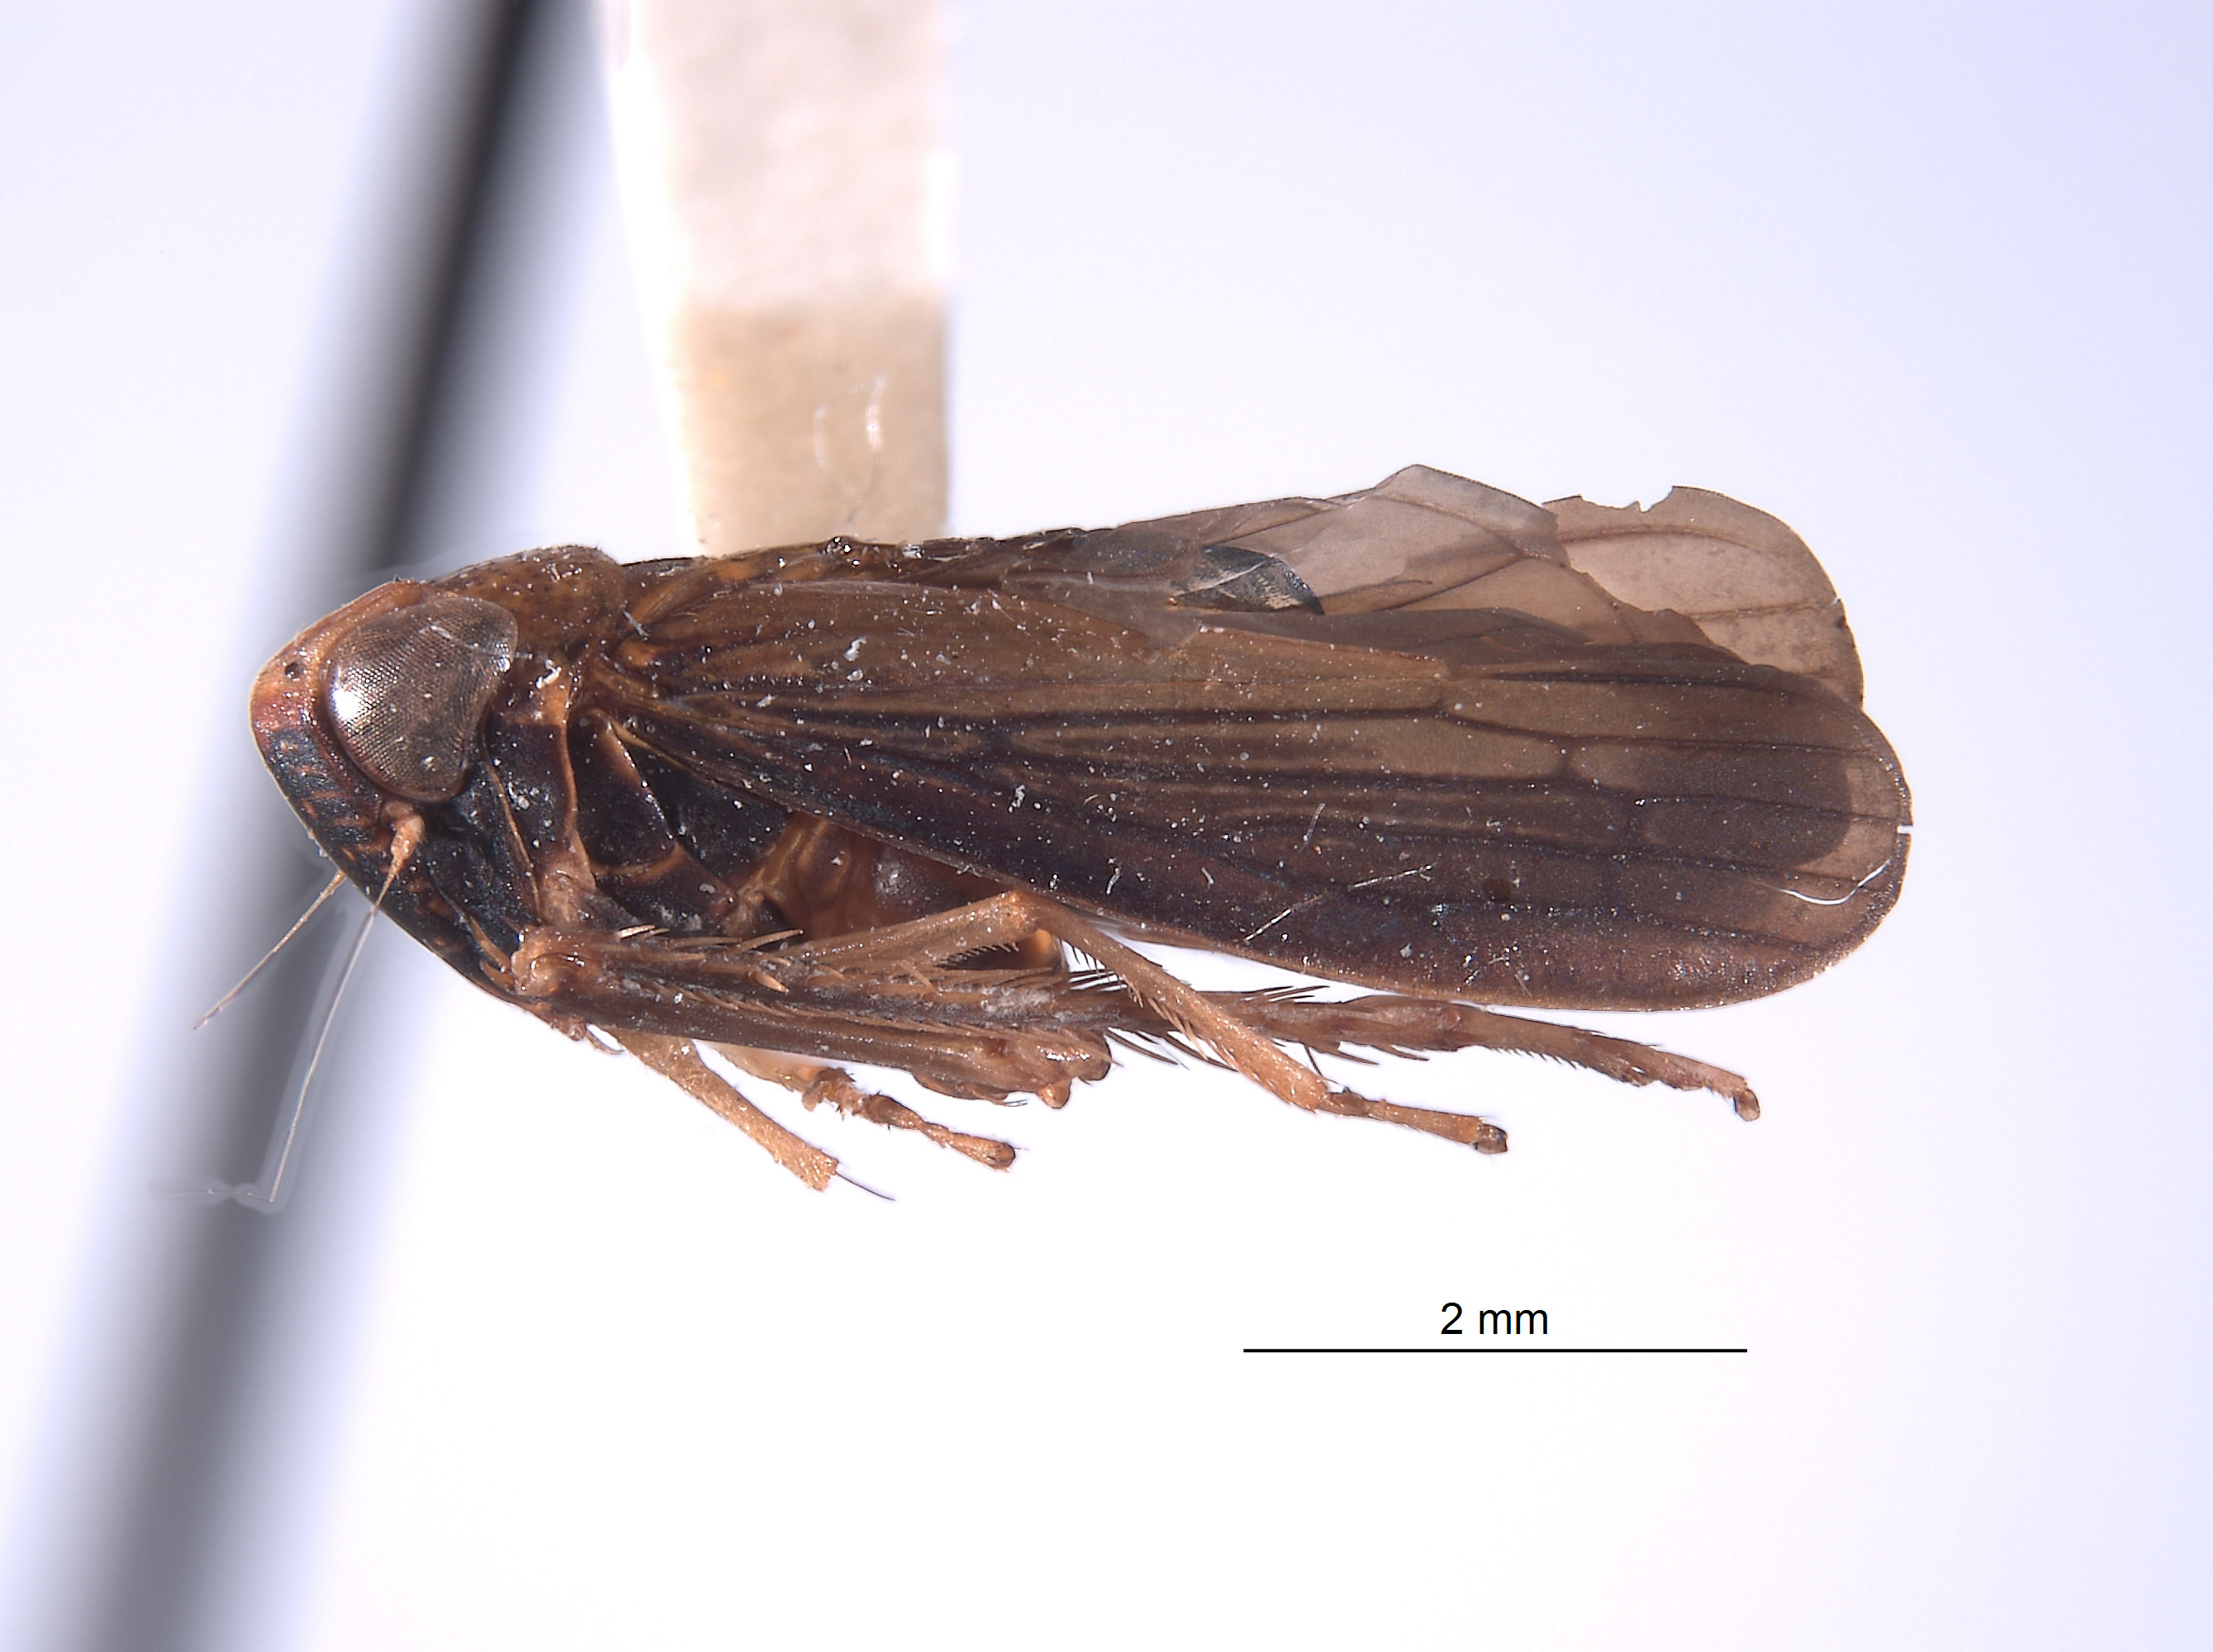 Youngolidia lateralis image